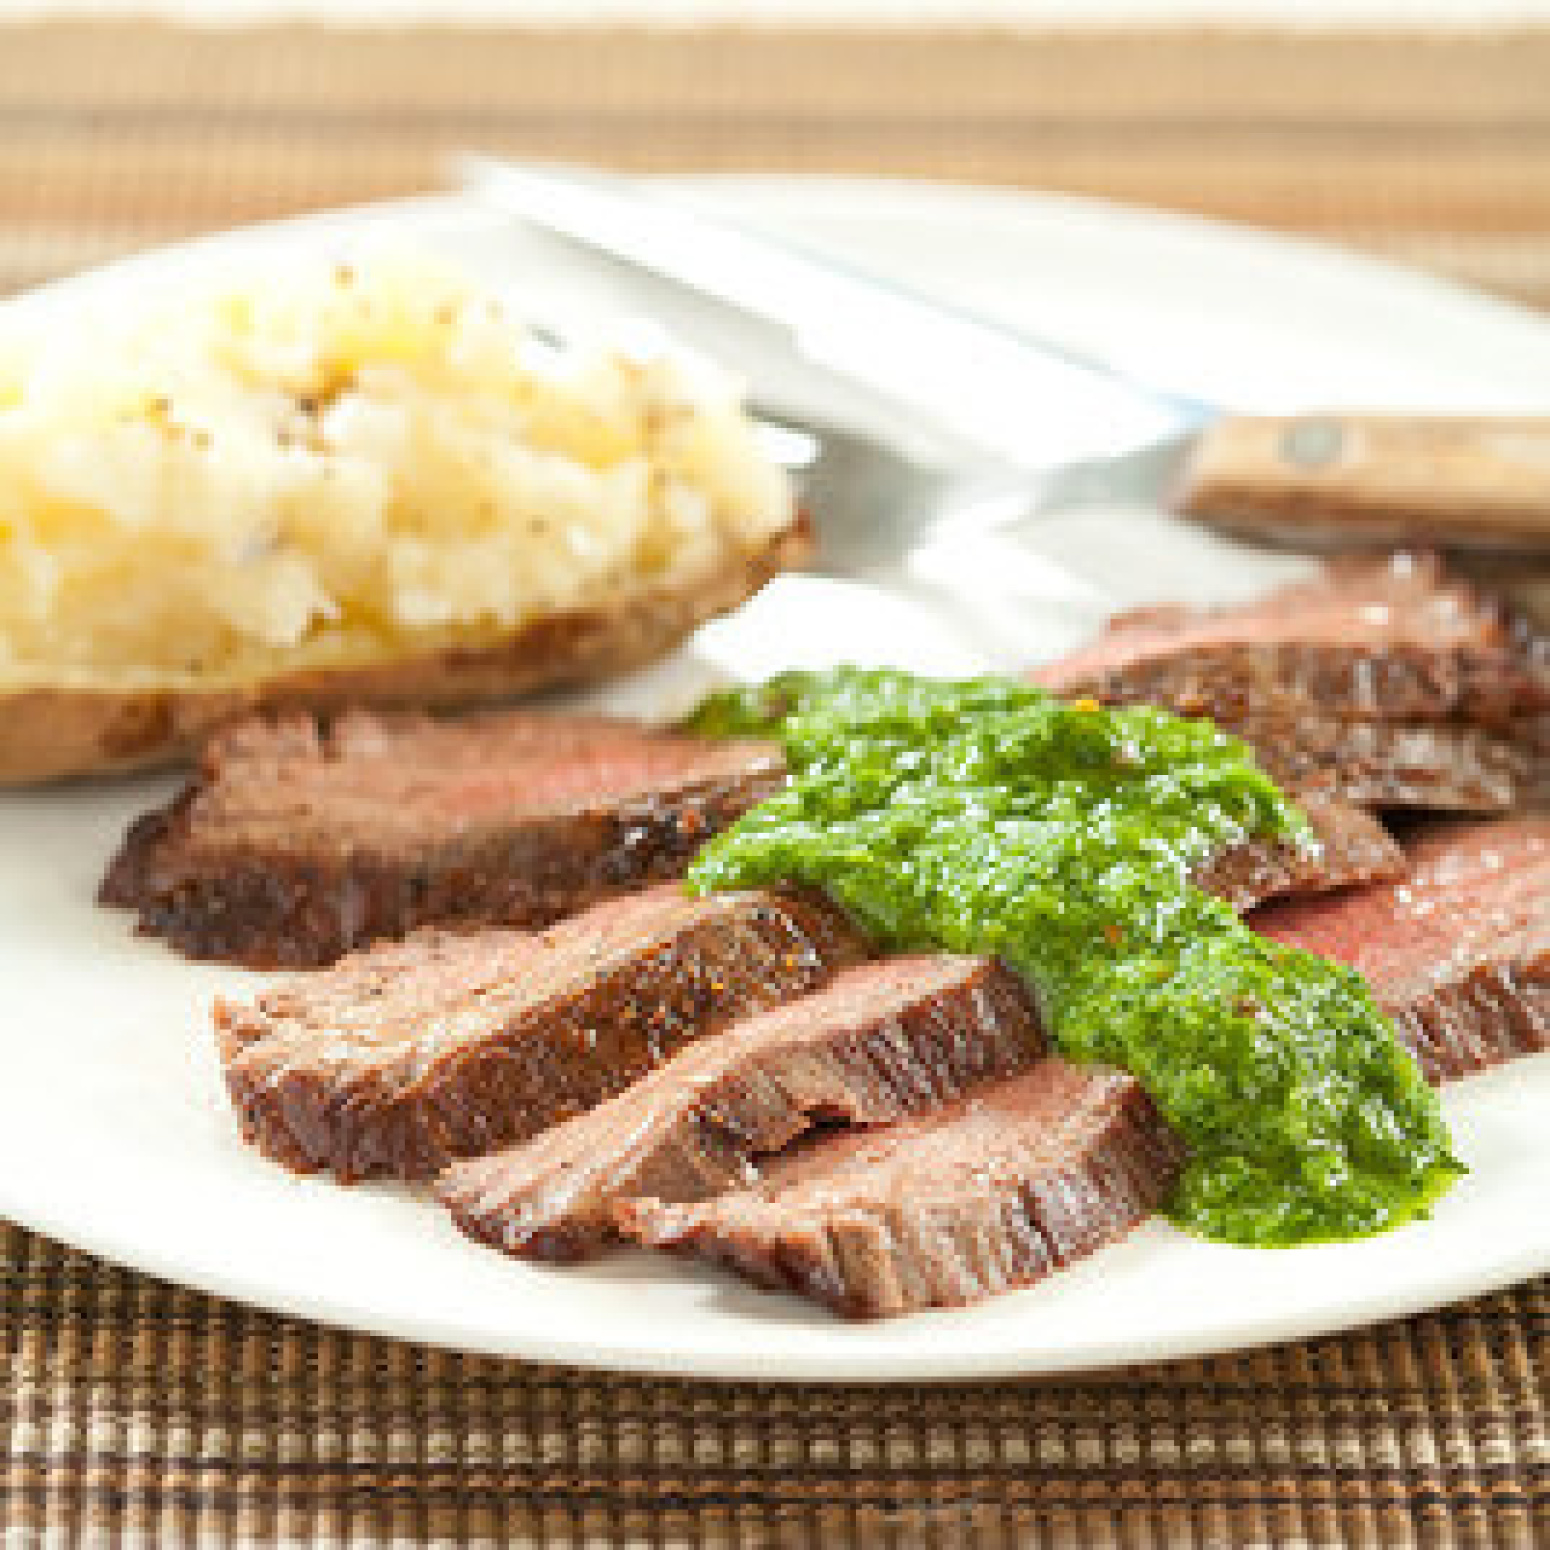 Seared Flank Steak with Chimichurri Sauce Recipe | Just A Pinch ...